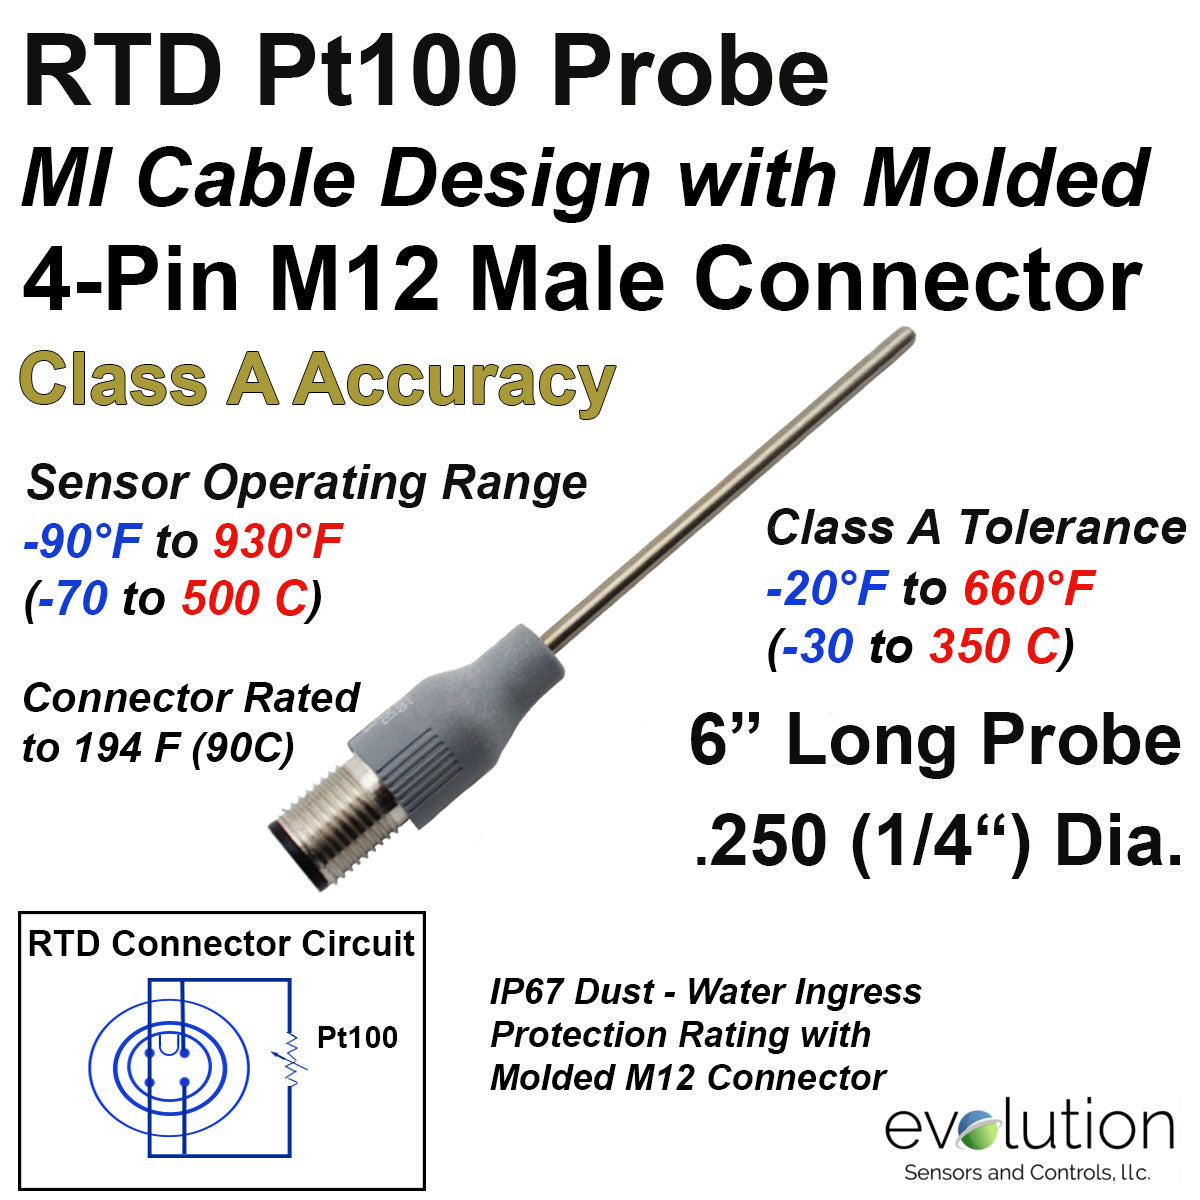 Rtd probe m12 molded connector 6 long stainless steel 14 diameter rtd probe with m12 molded circular connector 6 long stainless steel 14 diameter pt100 4 wire class a greentooth Choice Image